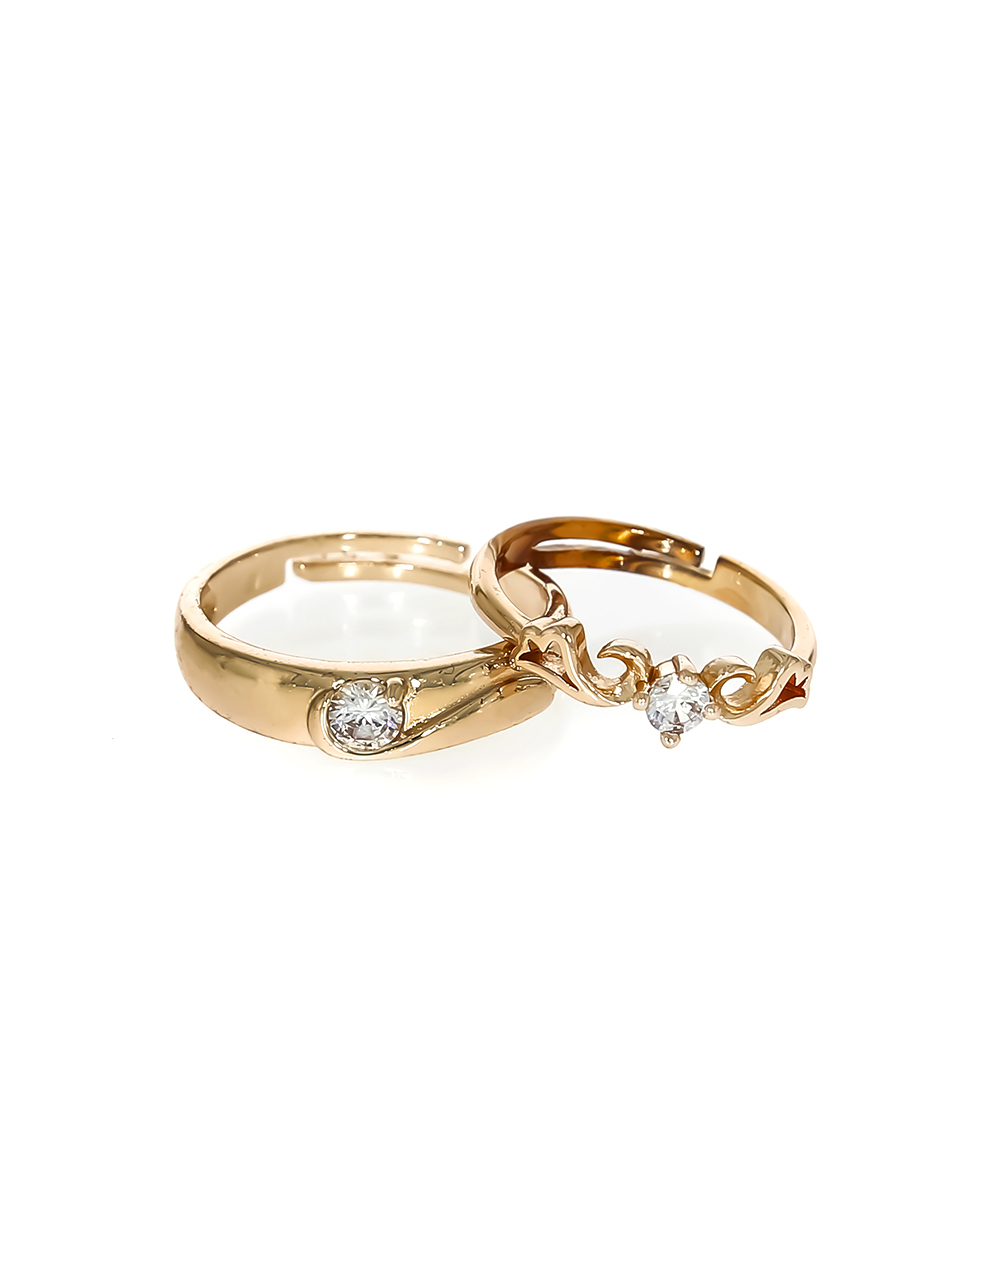 Rose Gold Finish Appealing Couple Rings Styled with Sparkling Stone